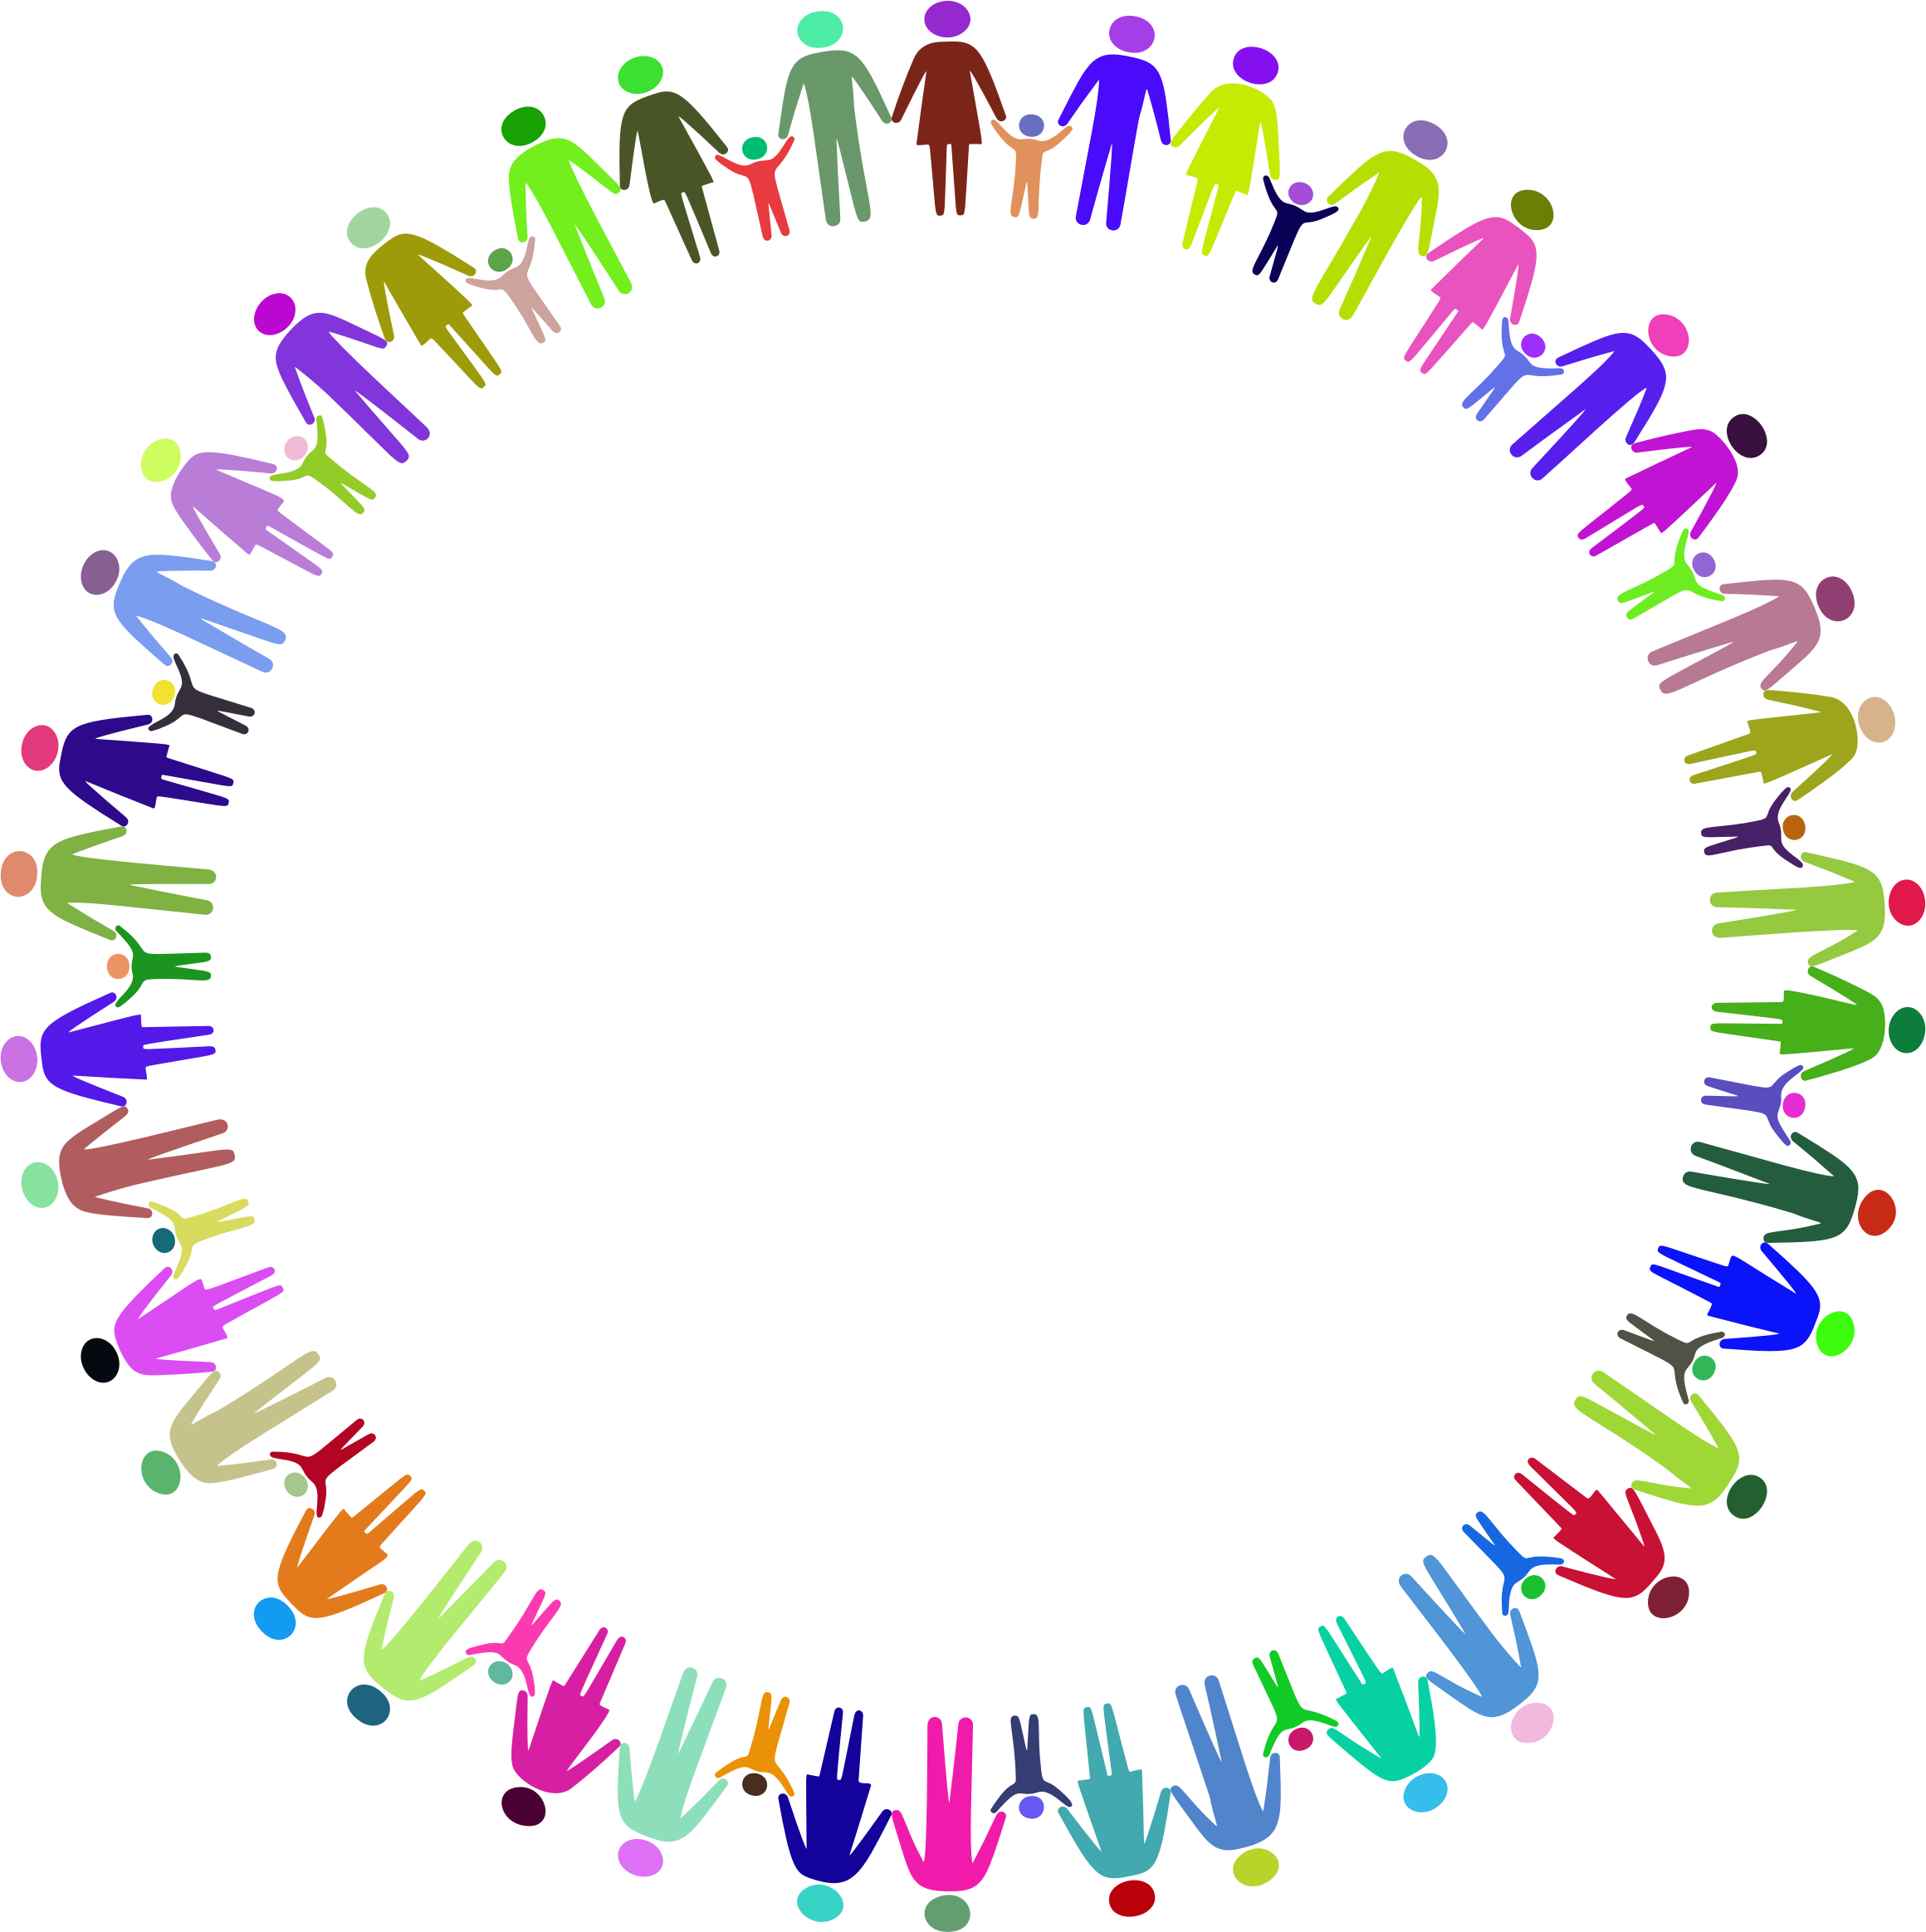 This free Icons Png design of Family Holding Hands Circle Prismatic PlusPng.com  - PNG Circle Of Hands